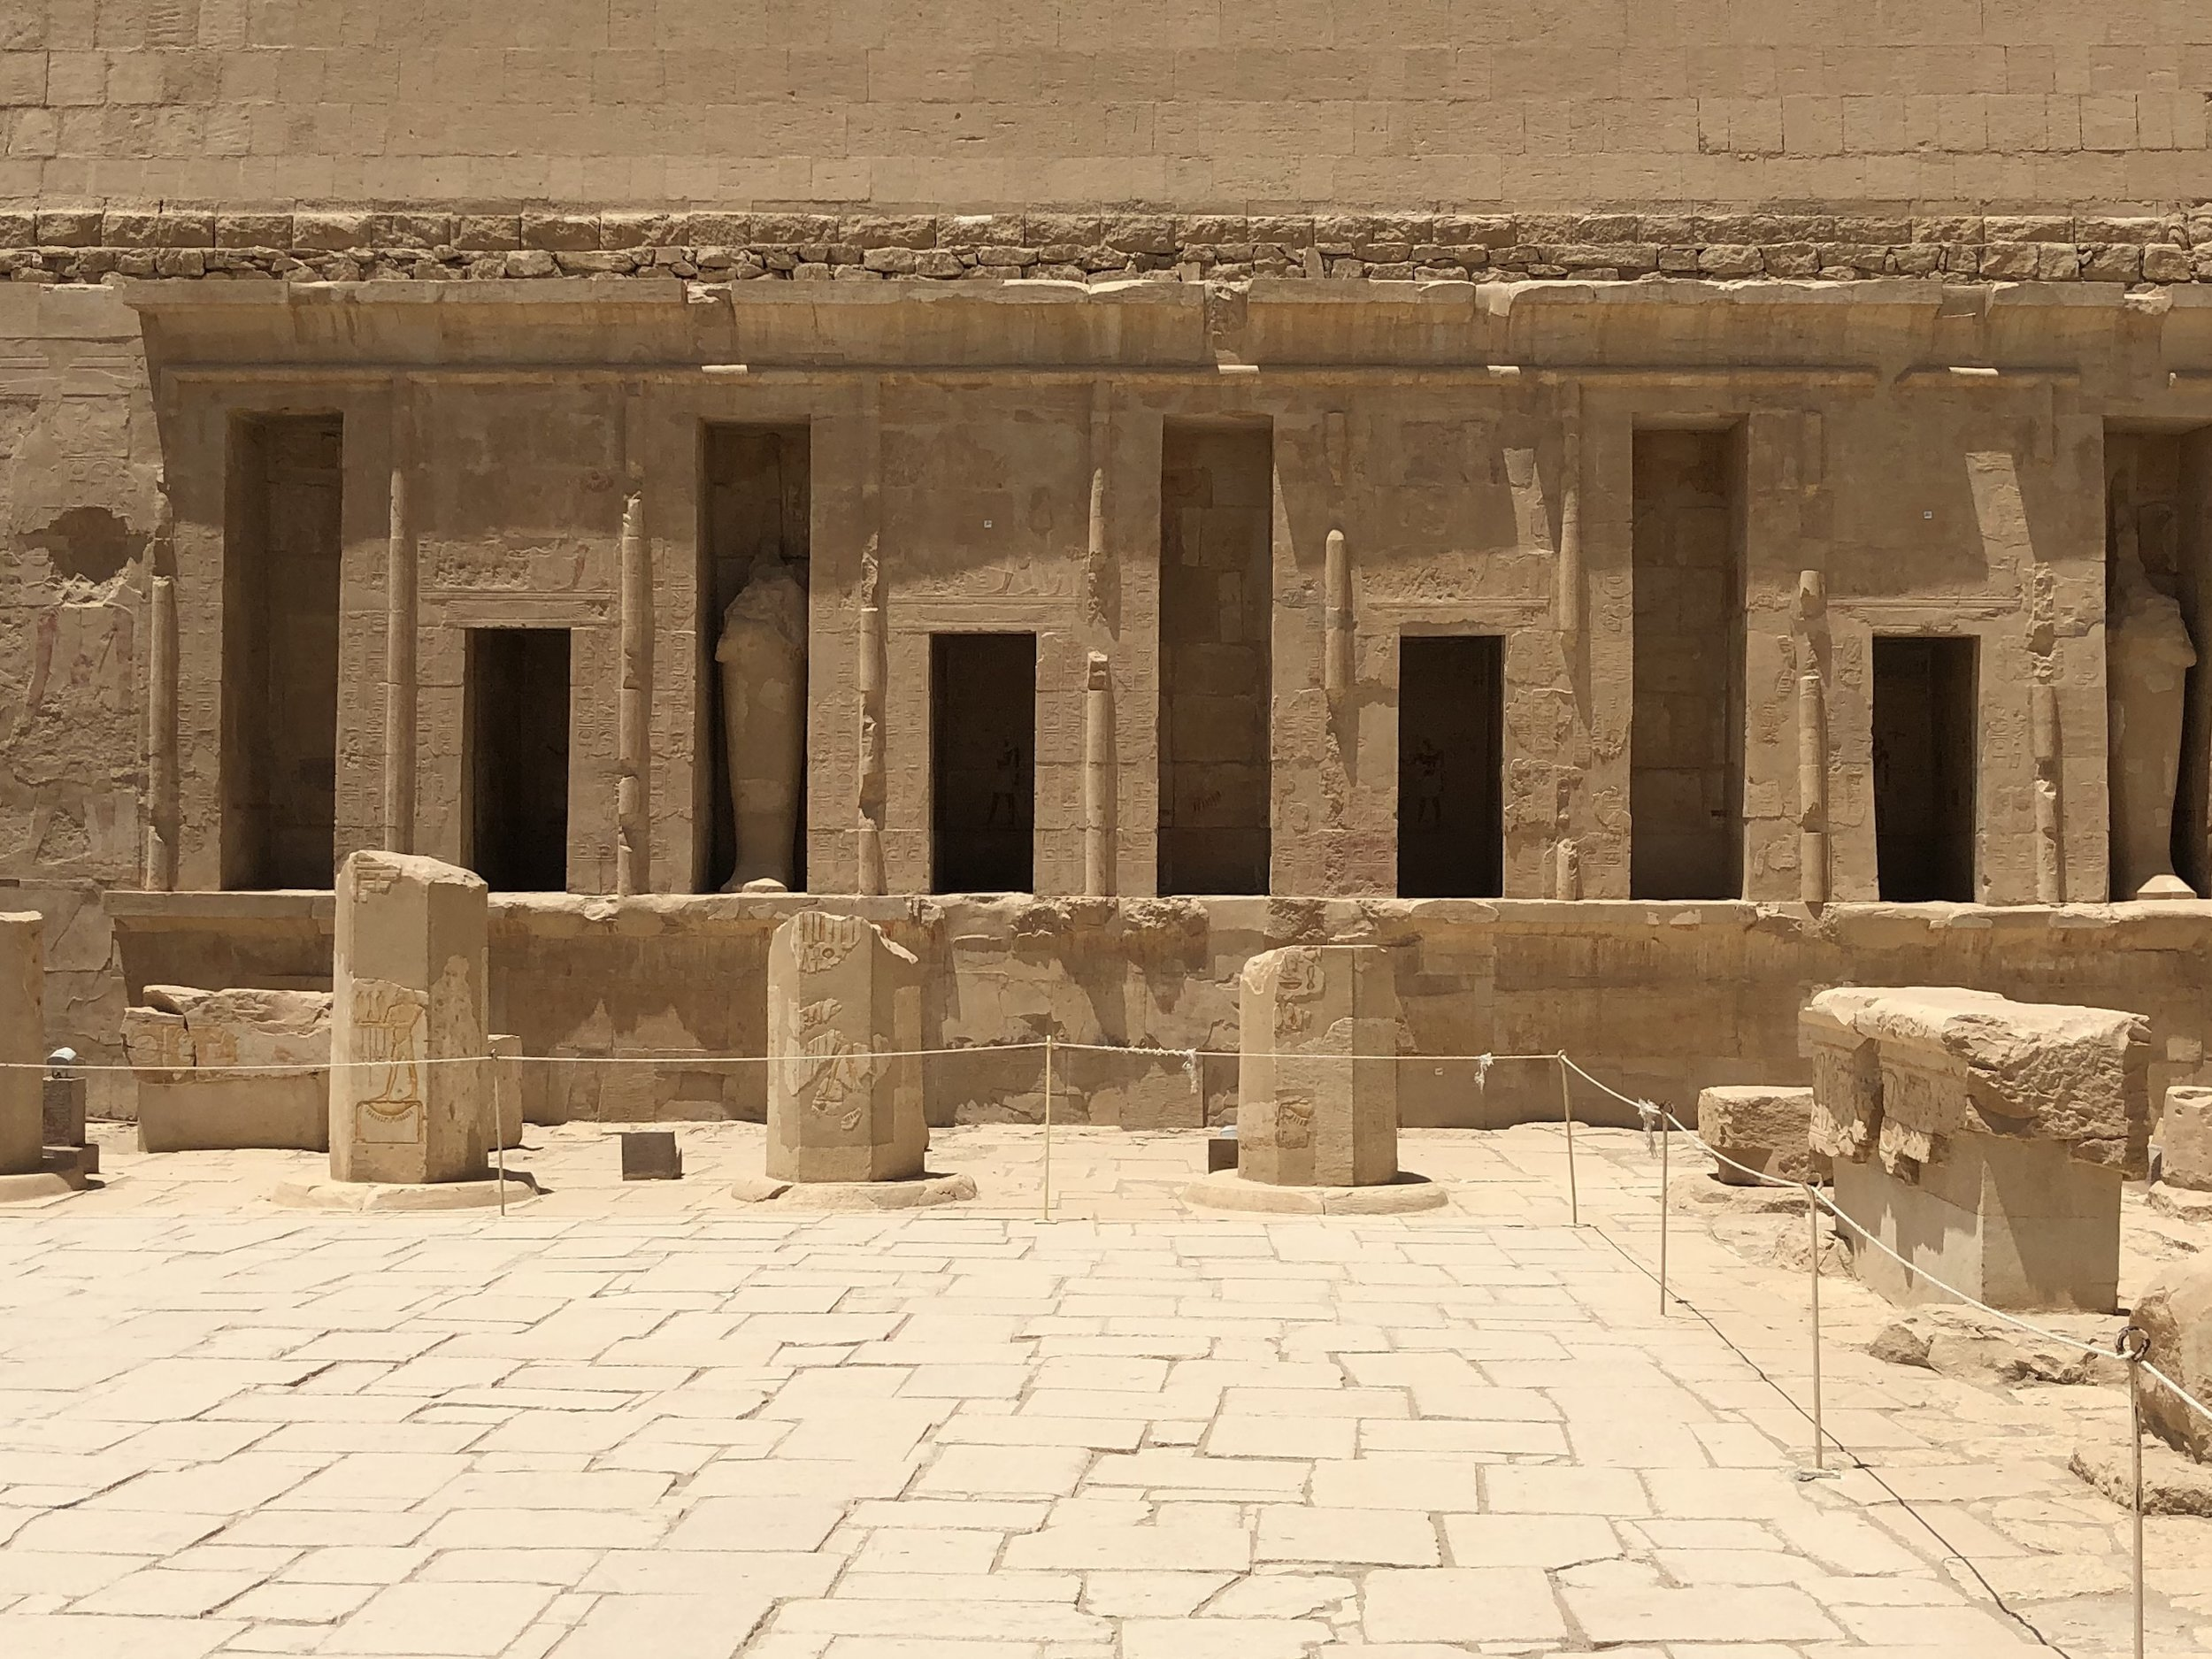 Only stubs of columns remain in the courtyard of the top terrace